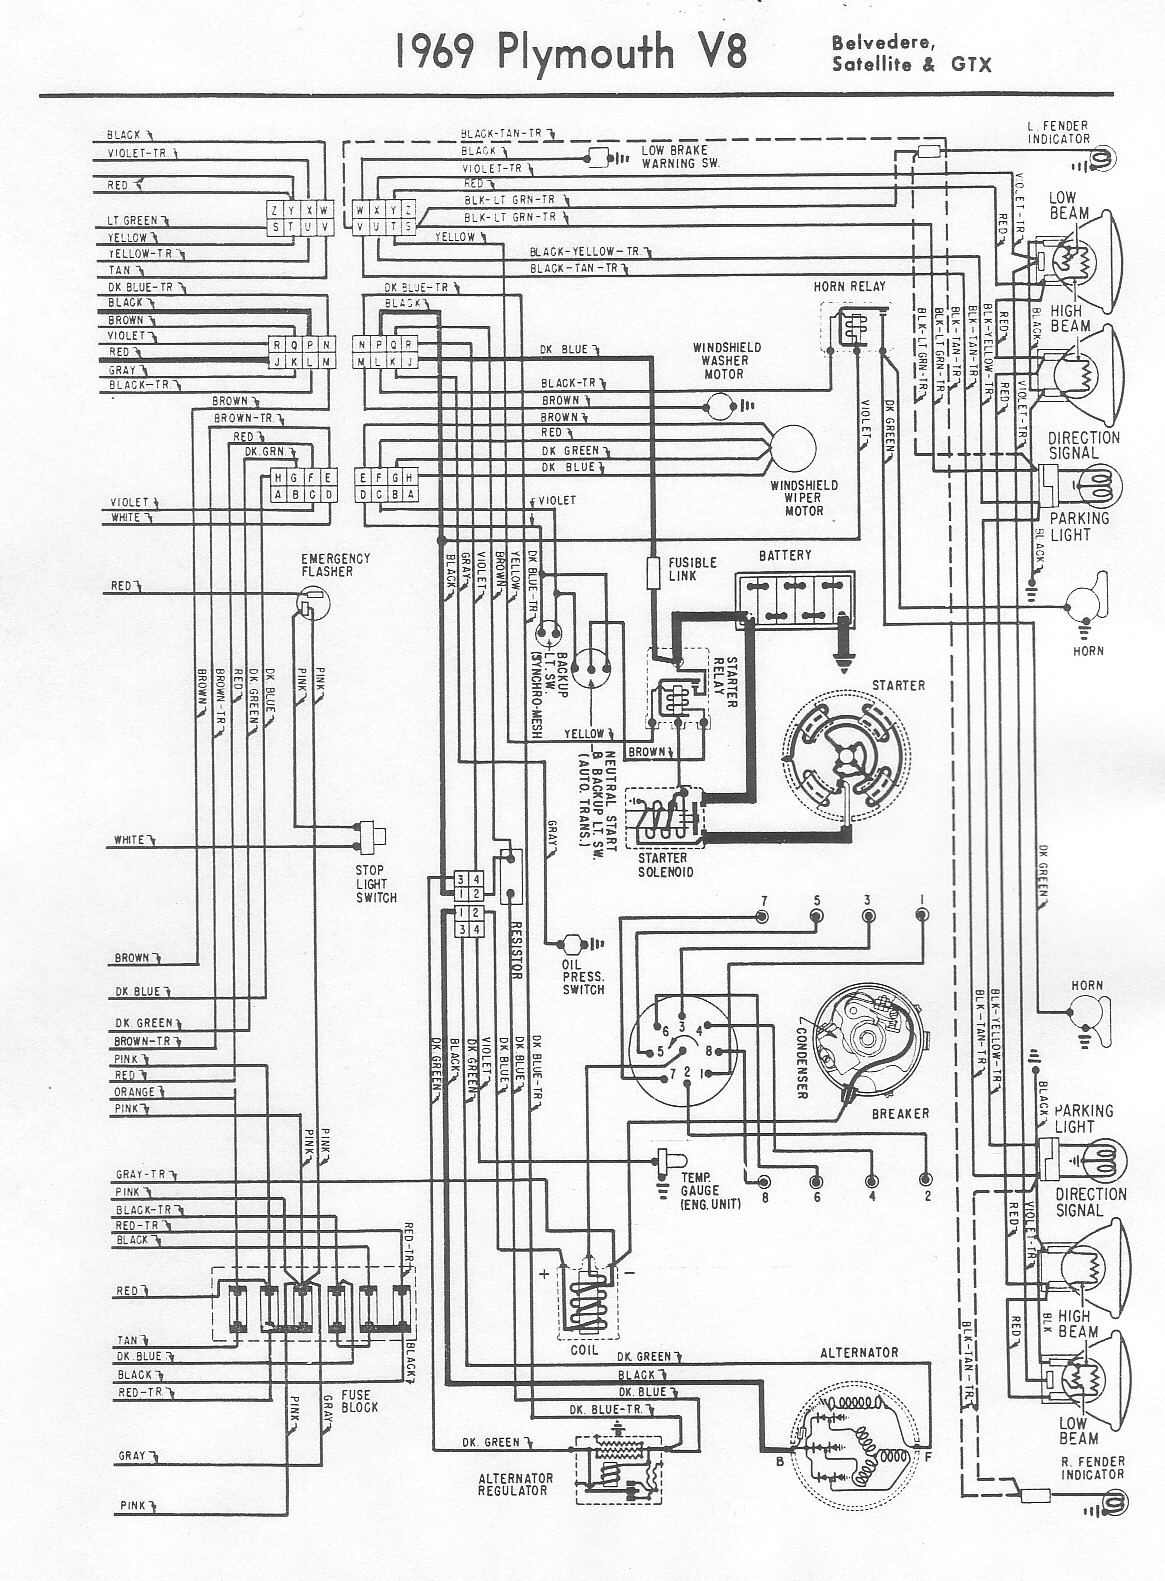 1968 Plymouth Satellite Wiring Diagram Circuit Schematic 1970 Dodge Gtx Schemes Buick Skylark Roadrunner